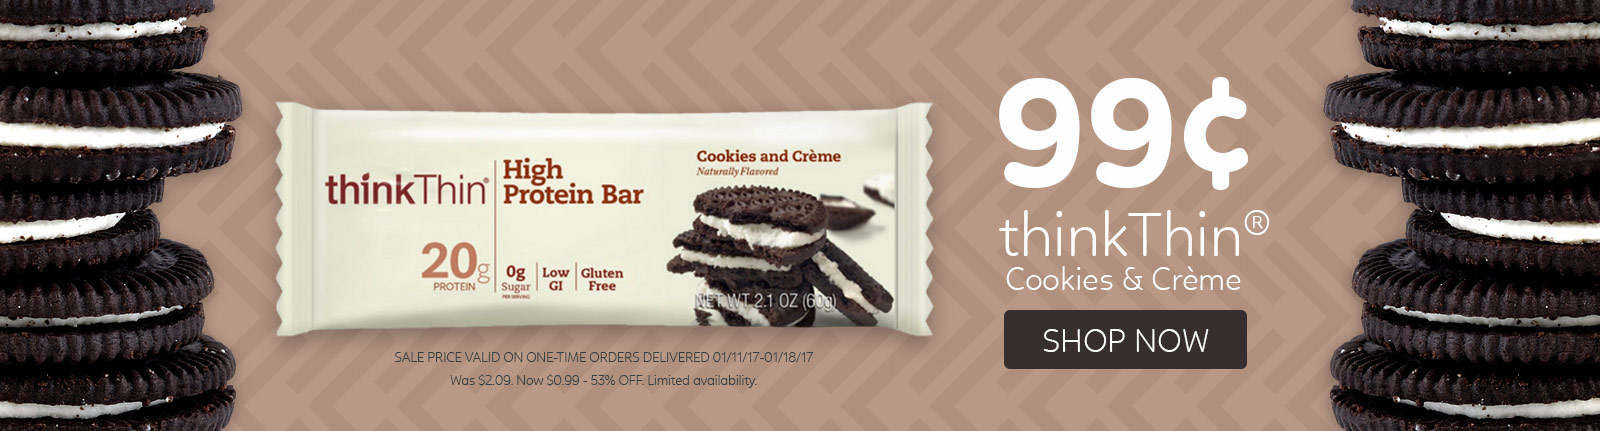 Think Thin Cookies and Creme